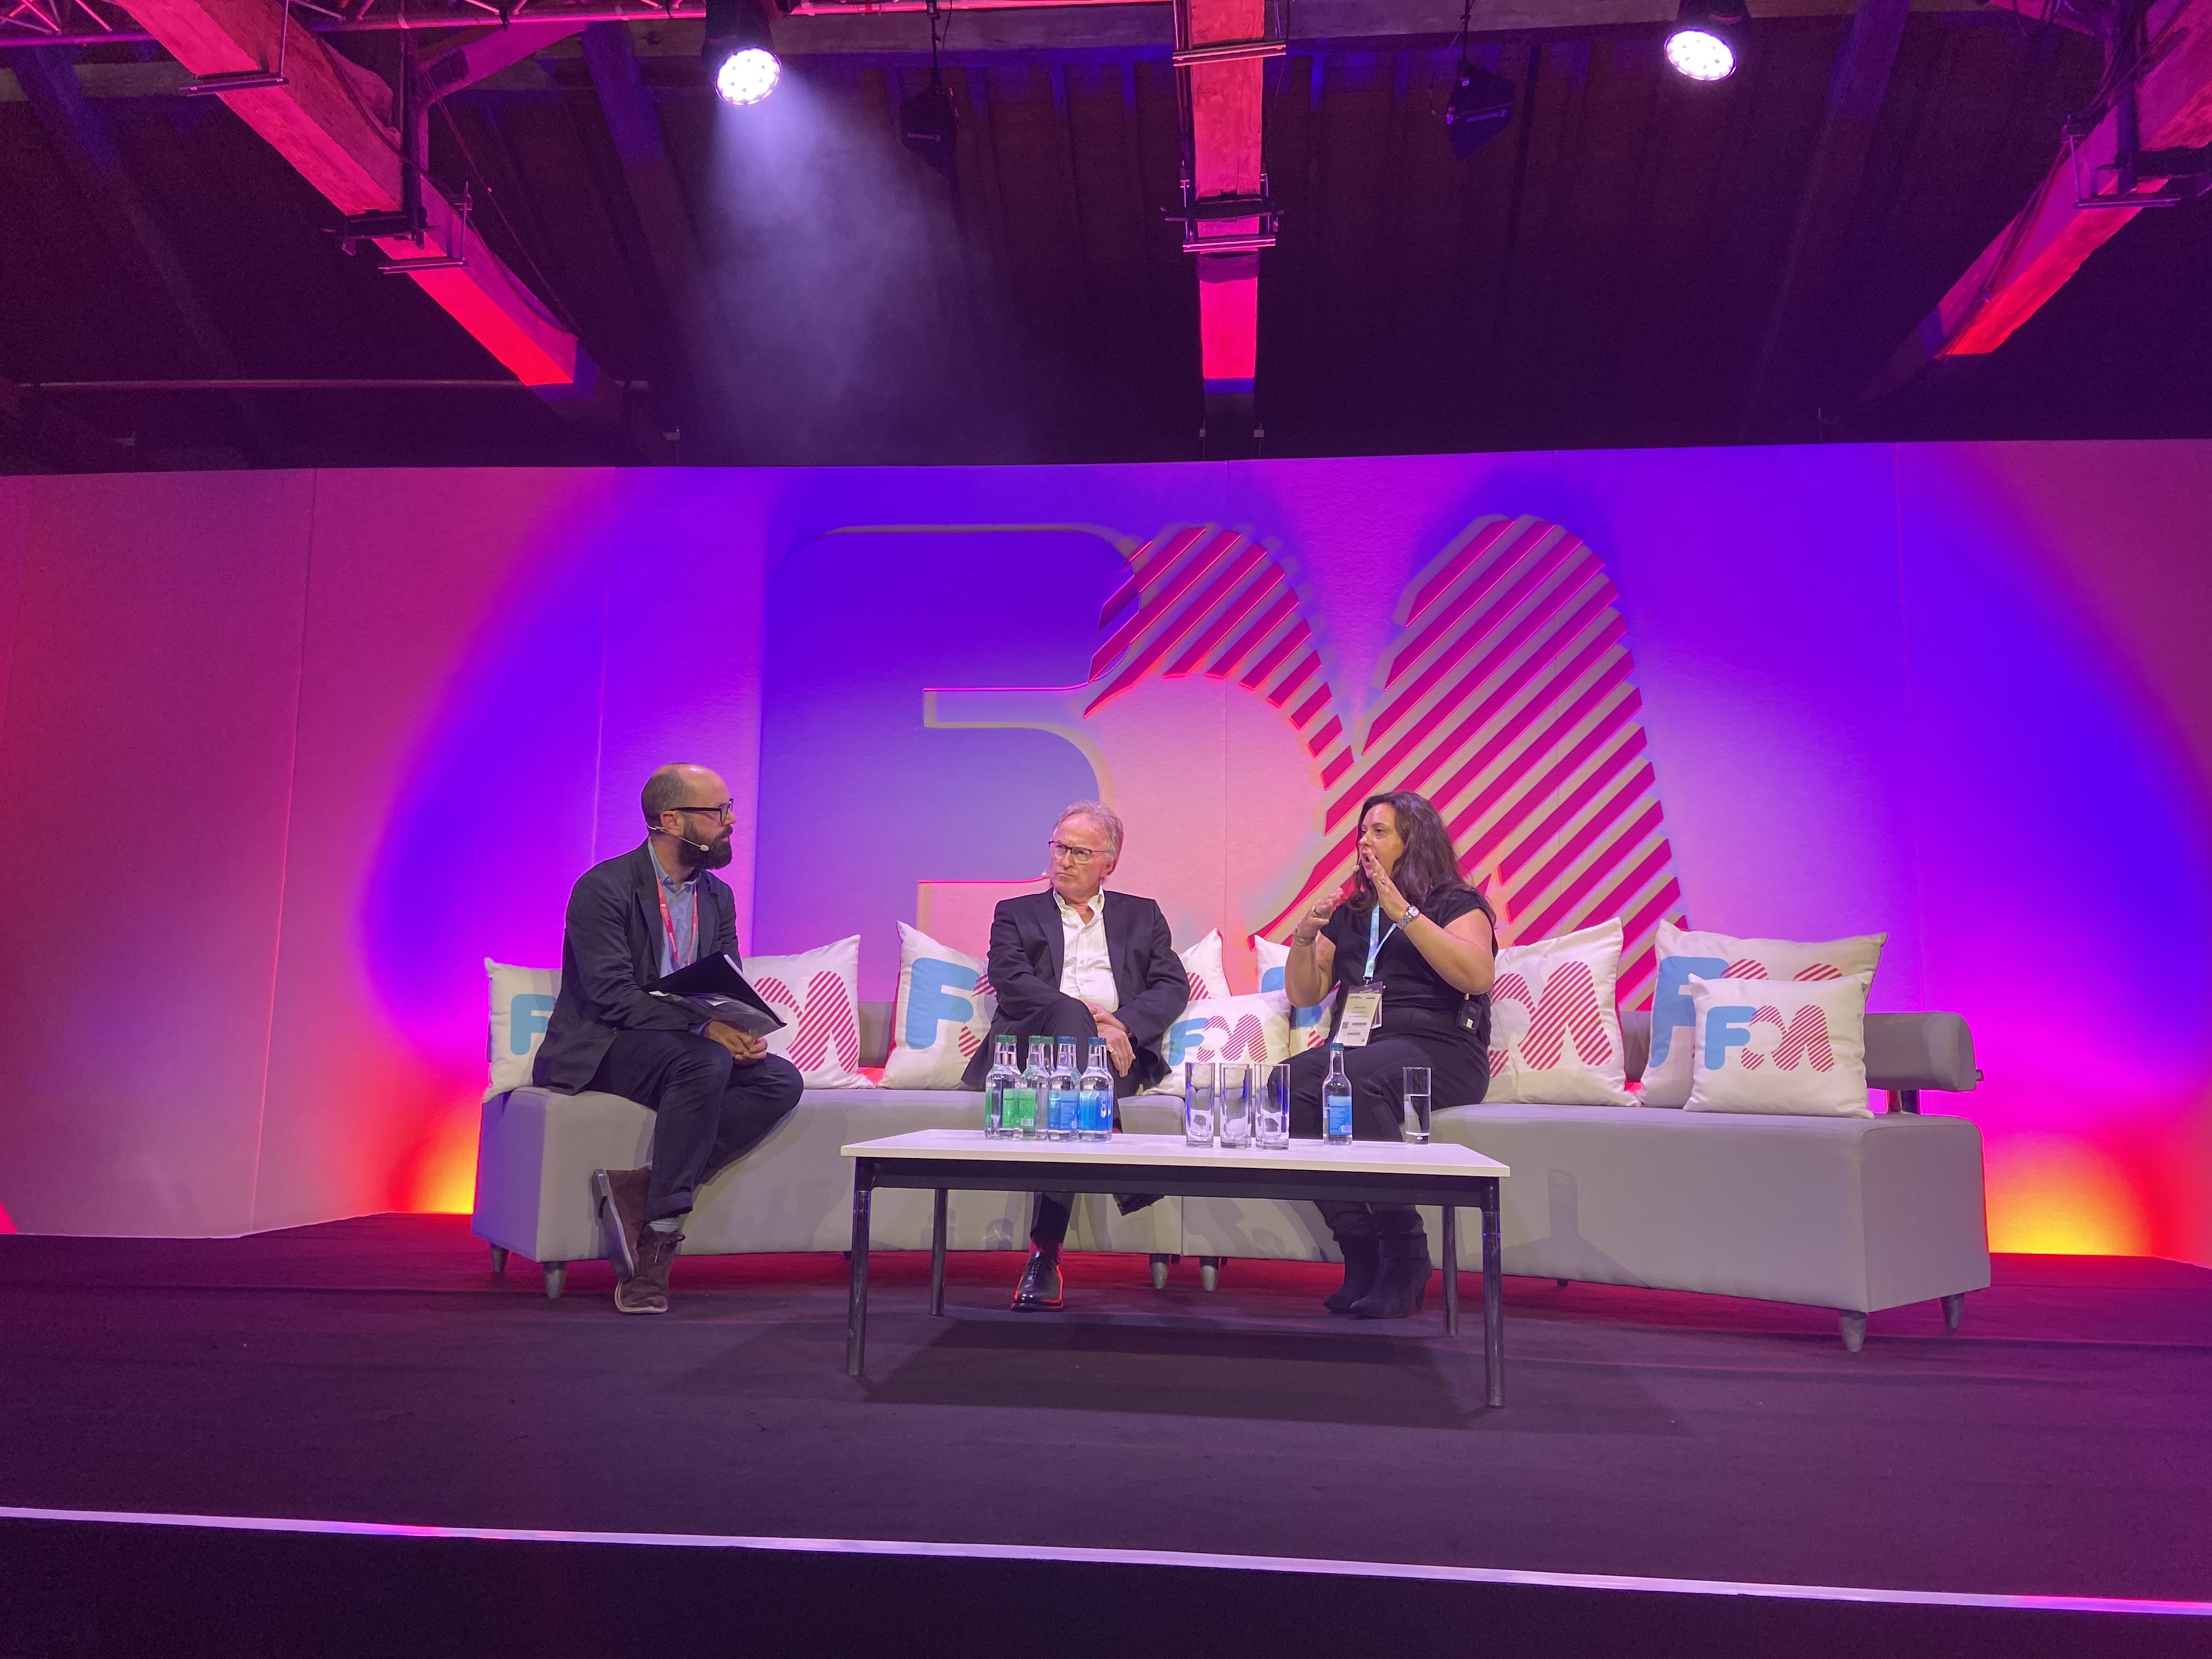 The TL;DR from London's Festival of Marketing